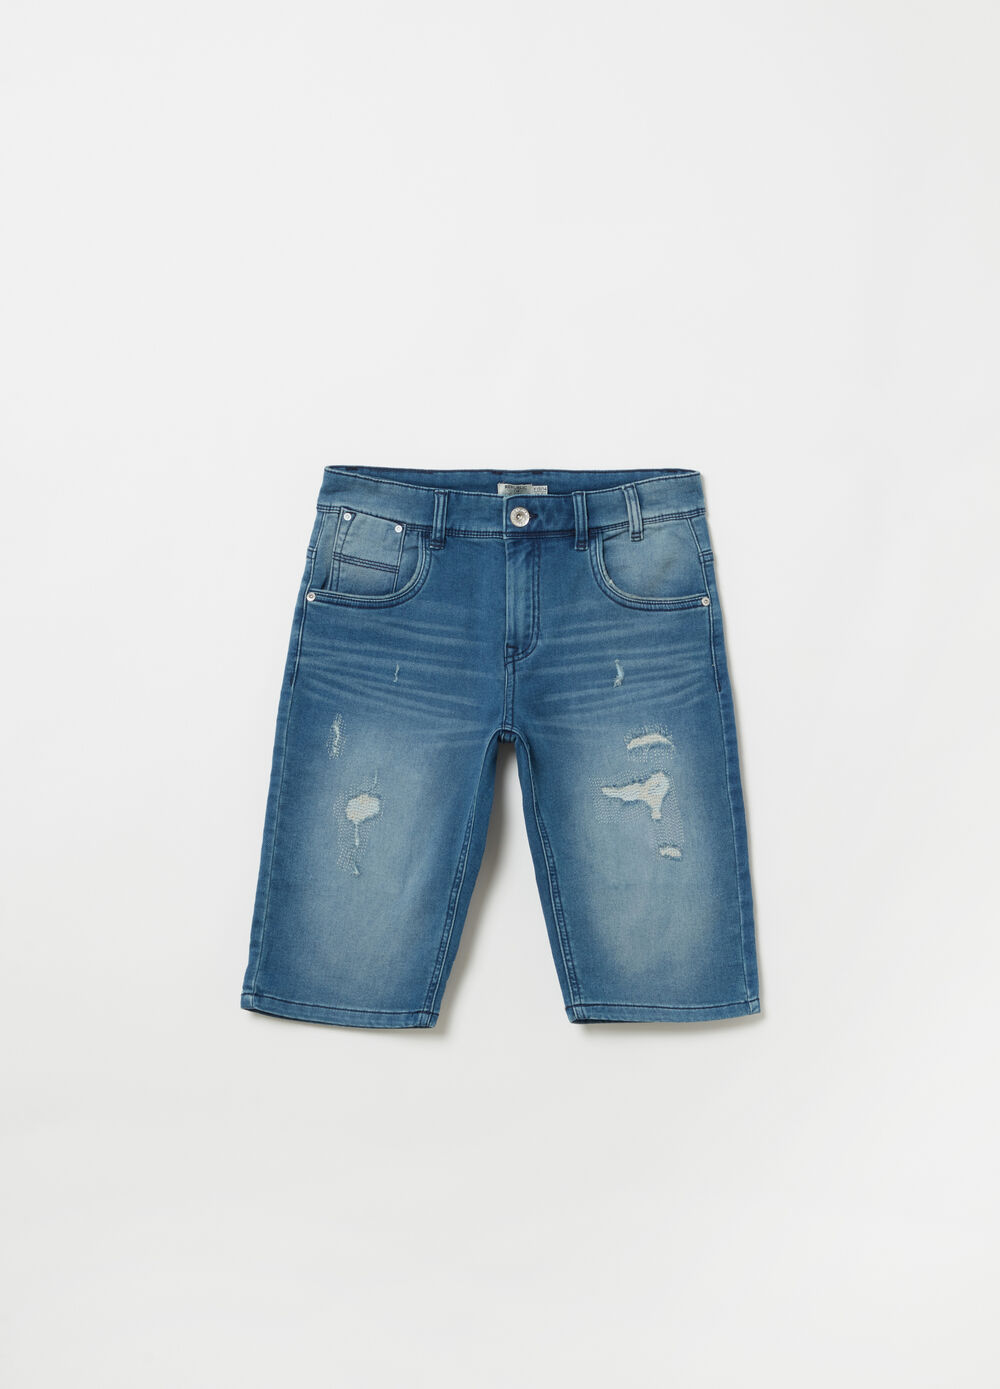 Bleached denim Bermuda shorts with rips